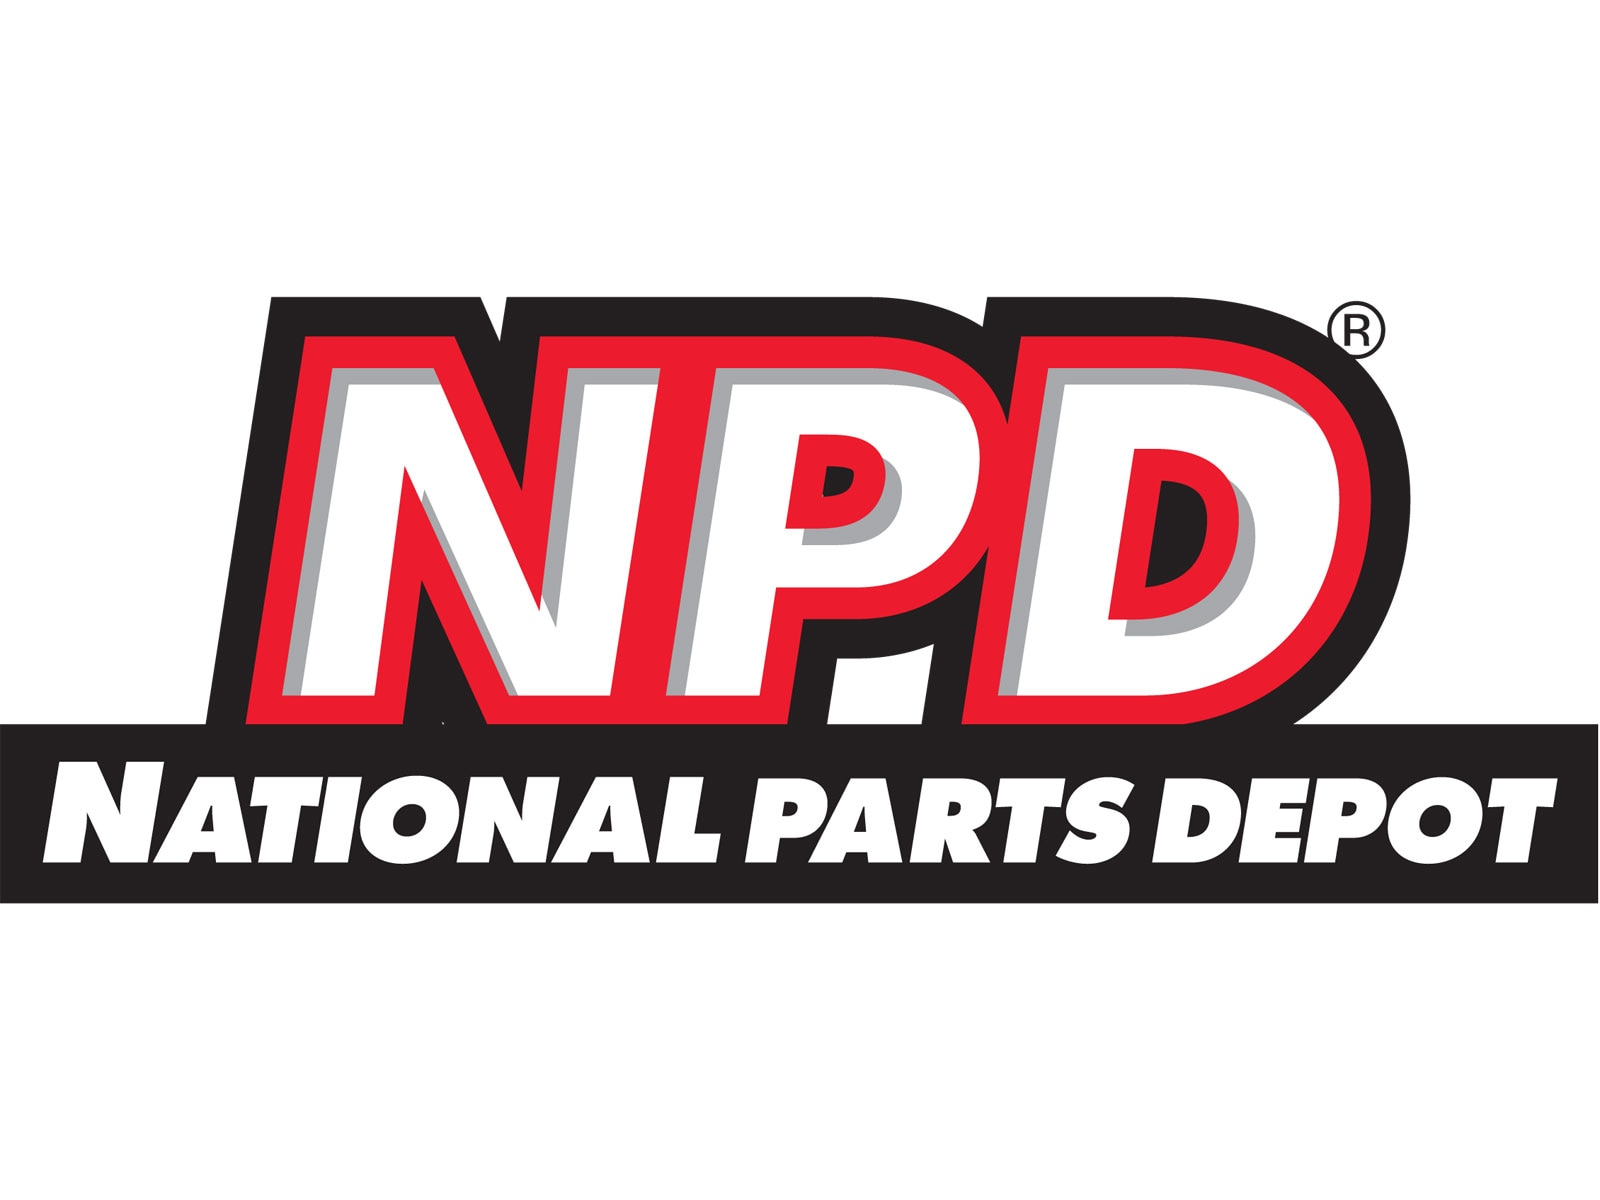 National Parts Depot Logo